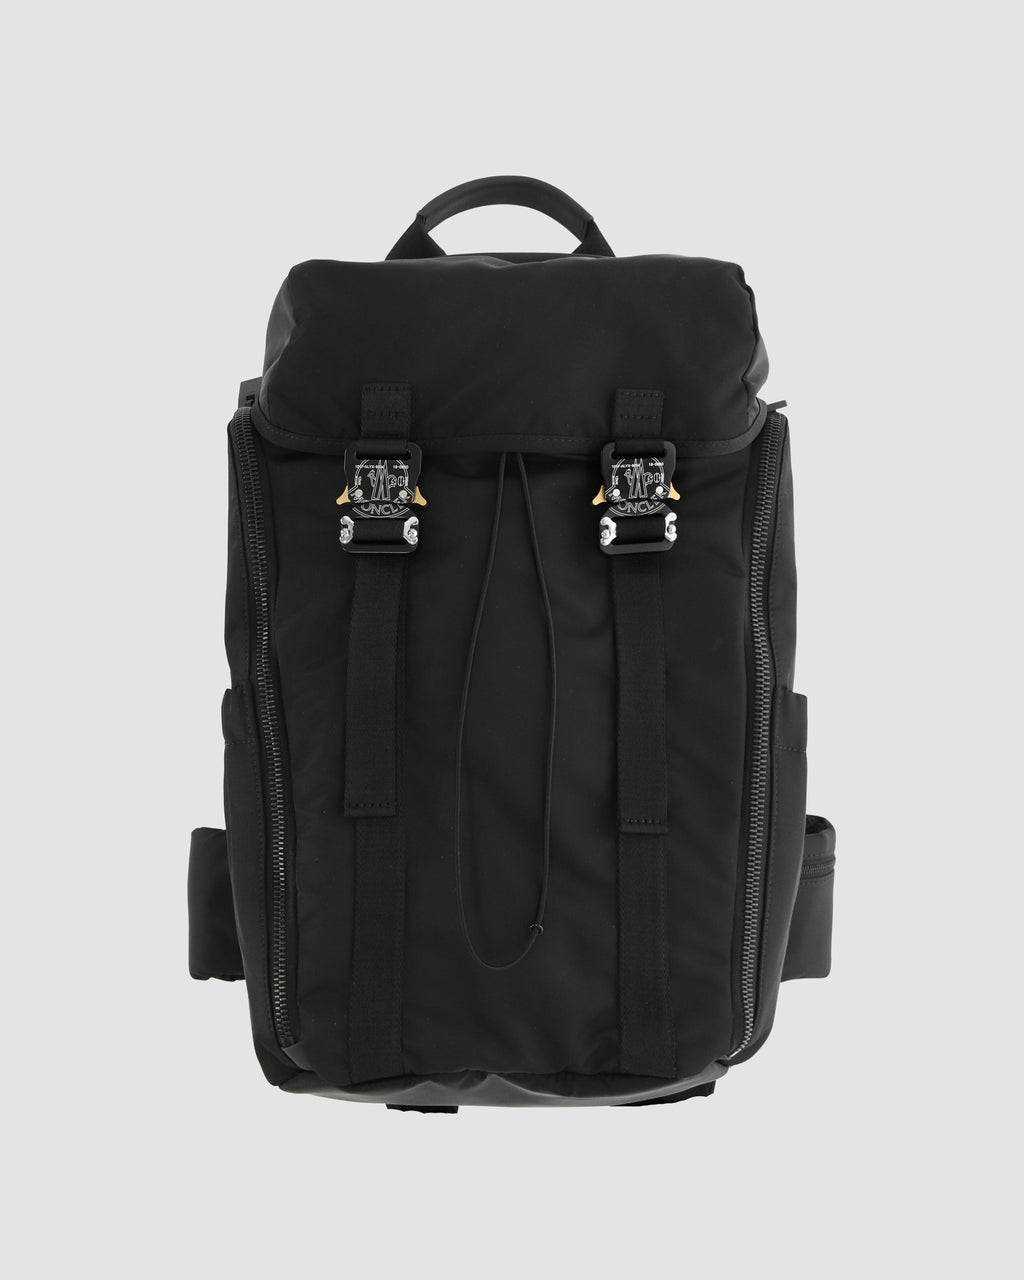 1017 ALYX 9SM | MONCLER BACKPACK | Backpack | BACKPACKS, BLACK, Google Shopping, Man, Moncler, S20, UNISEX, Woman